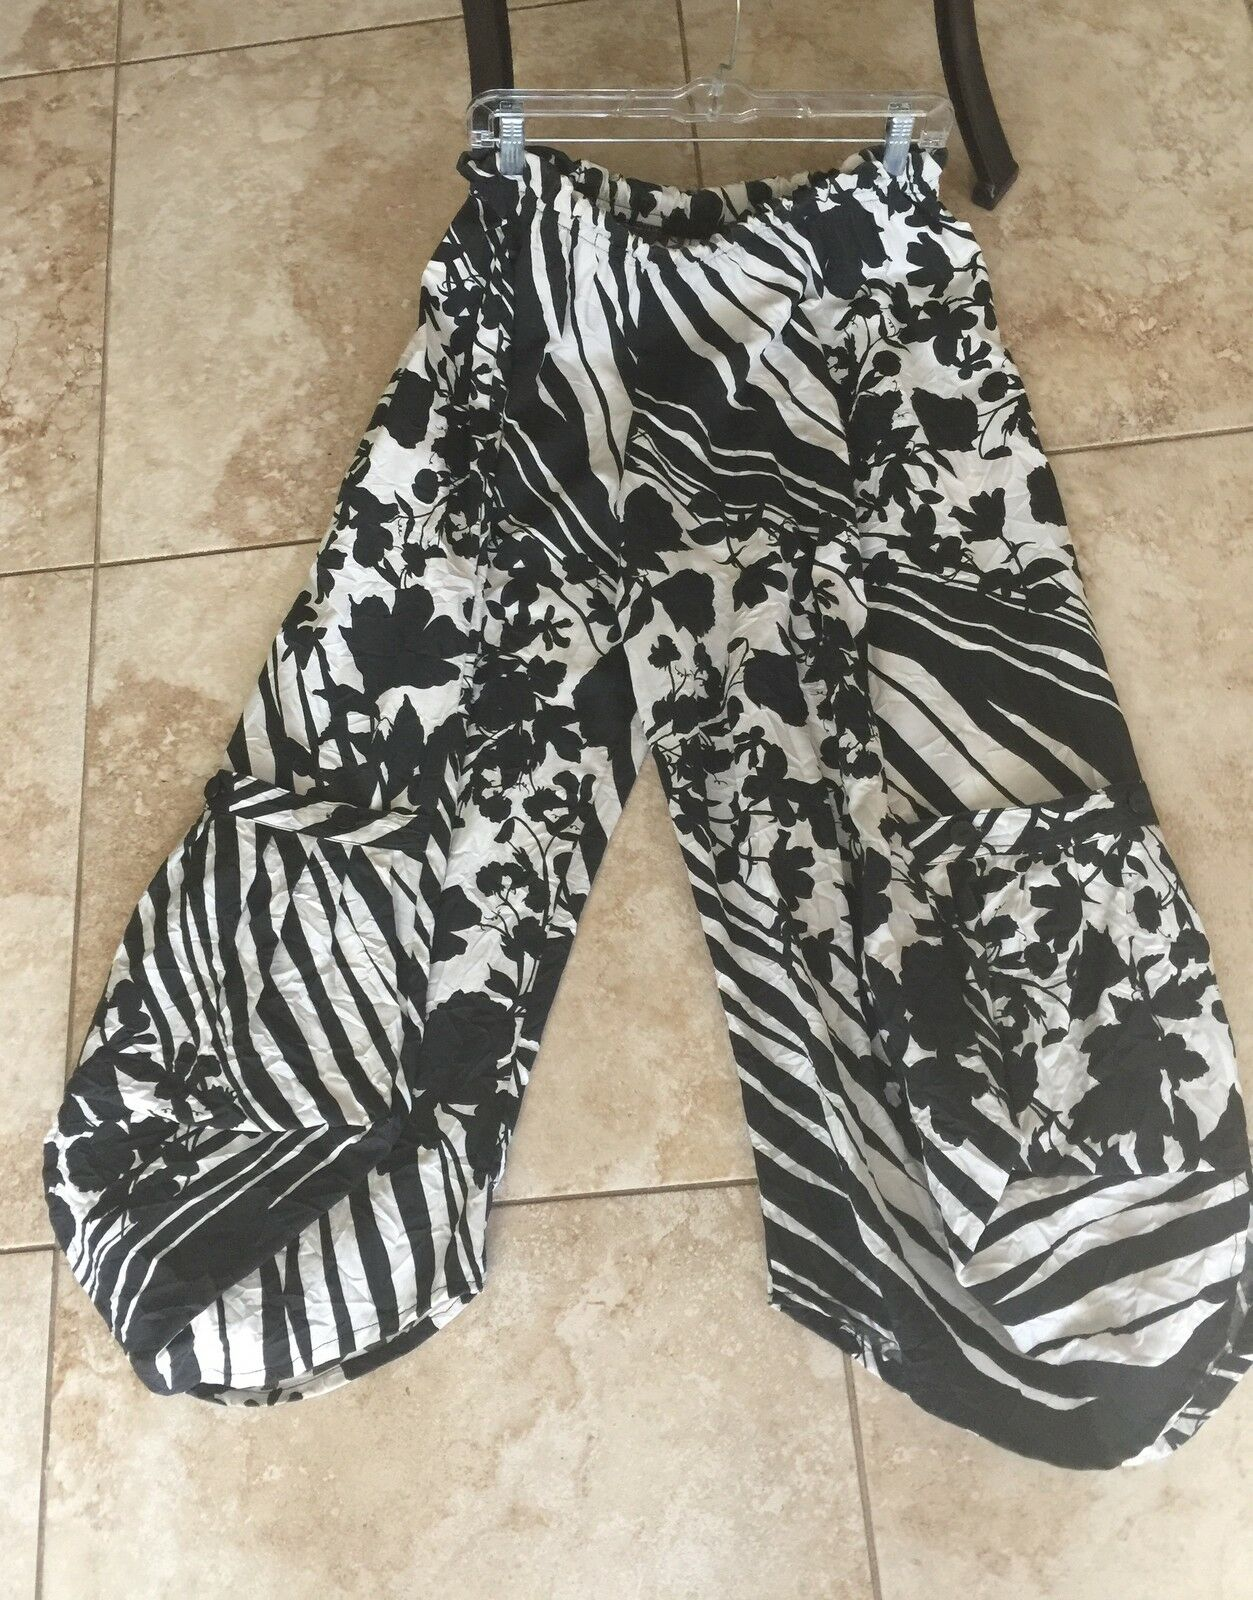 DRESSED TO KILL Jane Mohr crushed schwarz Weiß floral cargo pocket lagenlook pant